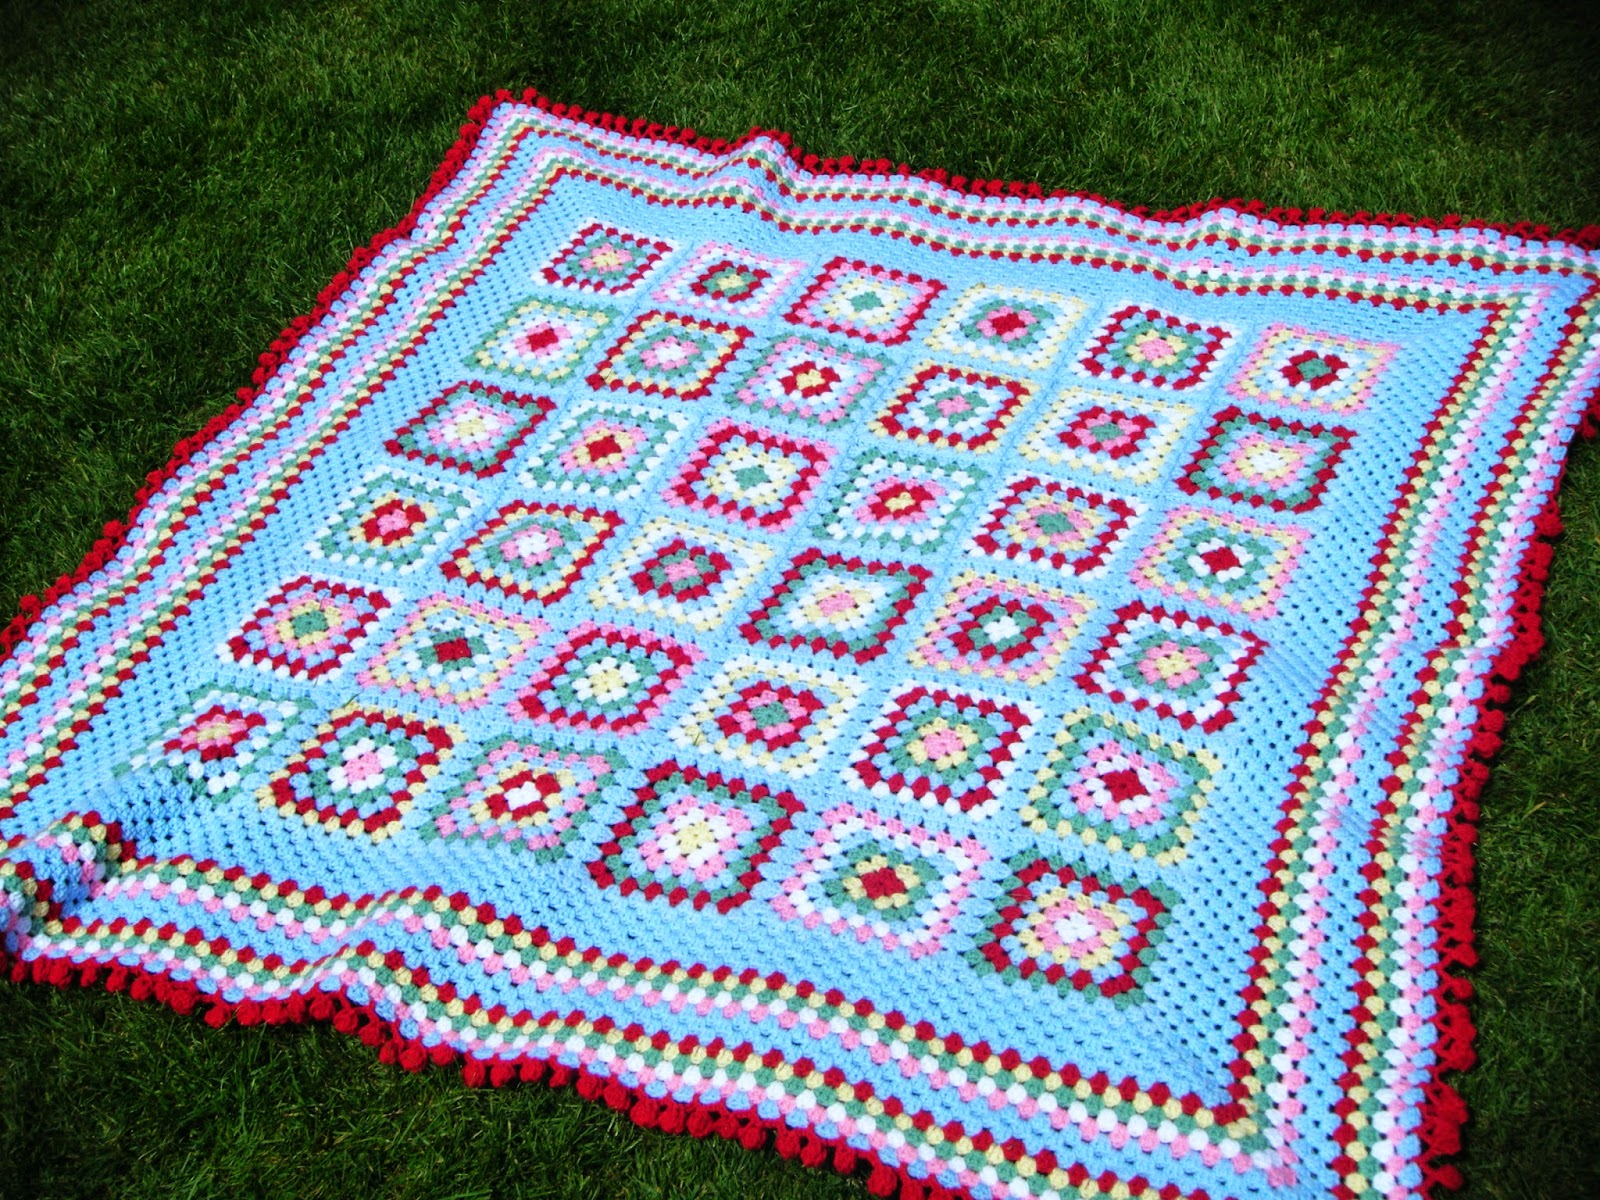 I Ve Seen Many Crochet Blankets This Style And Colour Way Around 7 Round Granny Squares With 4 In The Base Of Sky Blue